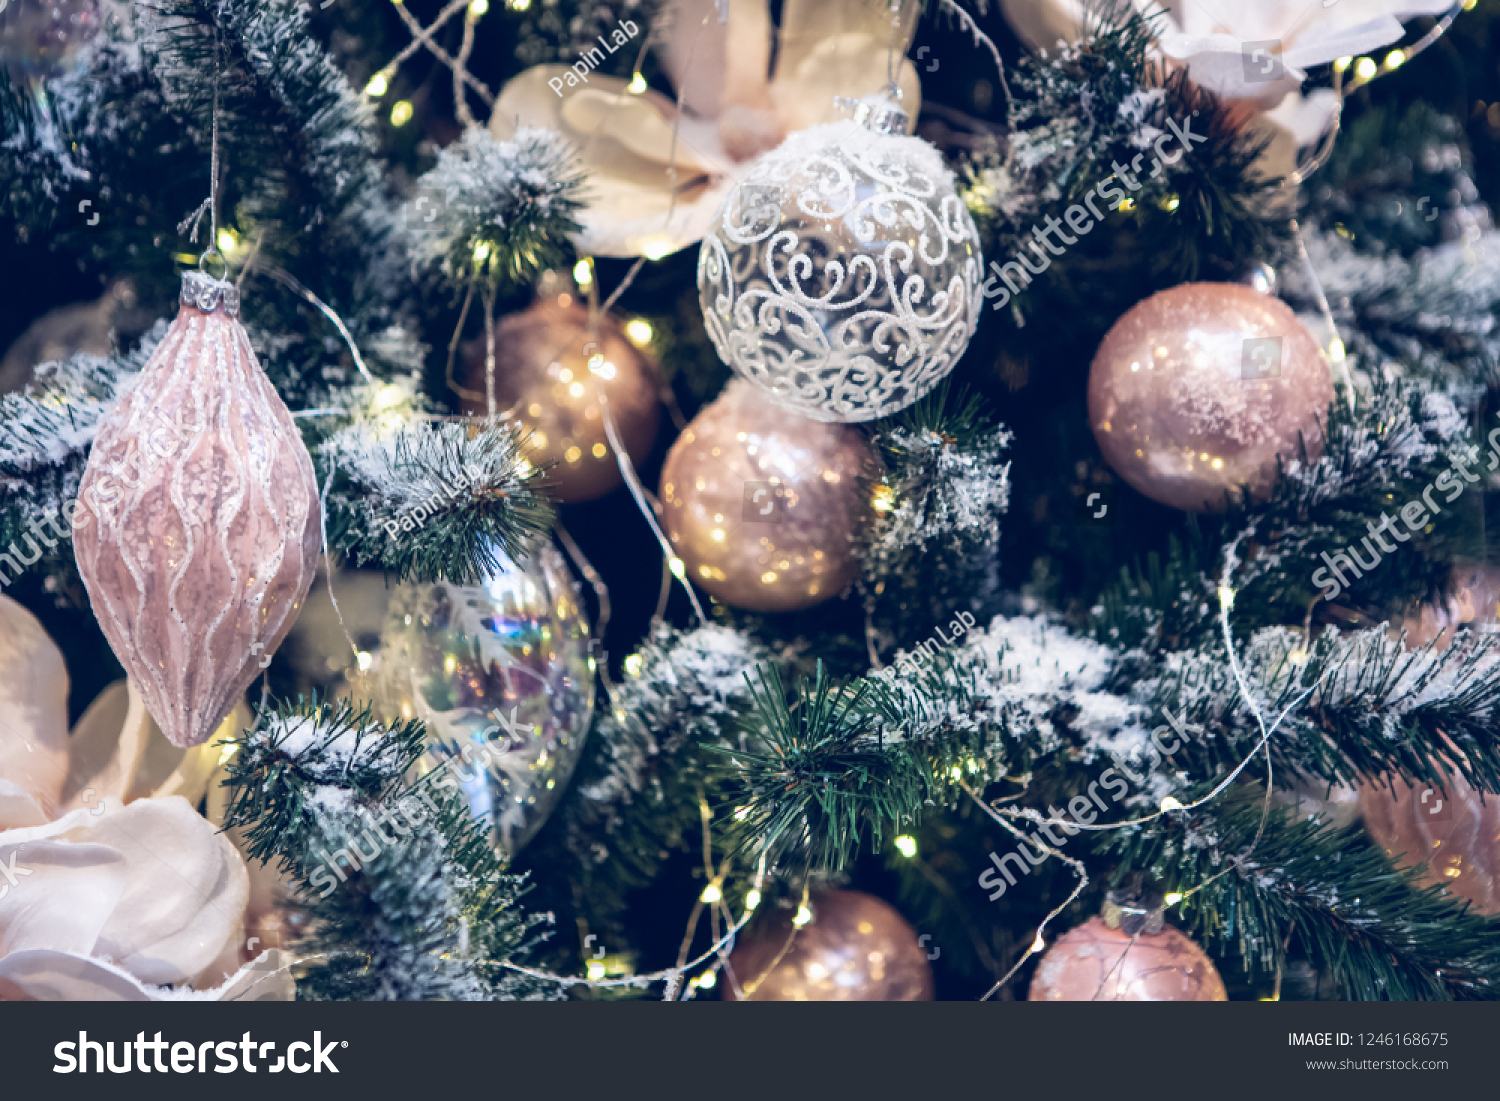 image regarding Christmas Tree Shoppe Printable Coupons identify Picture Of Xmas Tree Retail outlet Moments Low cost House Decor